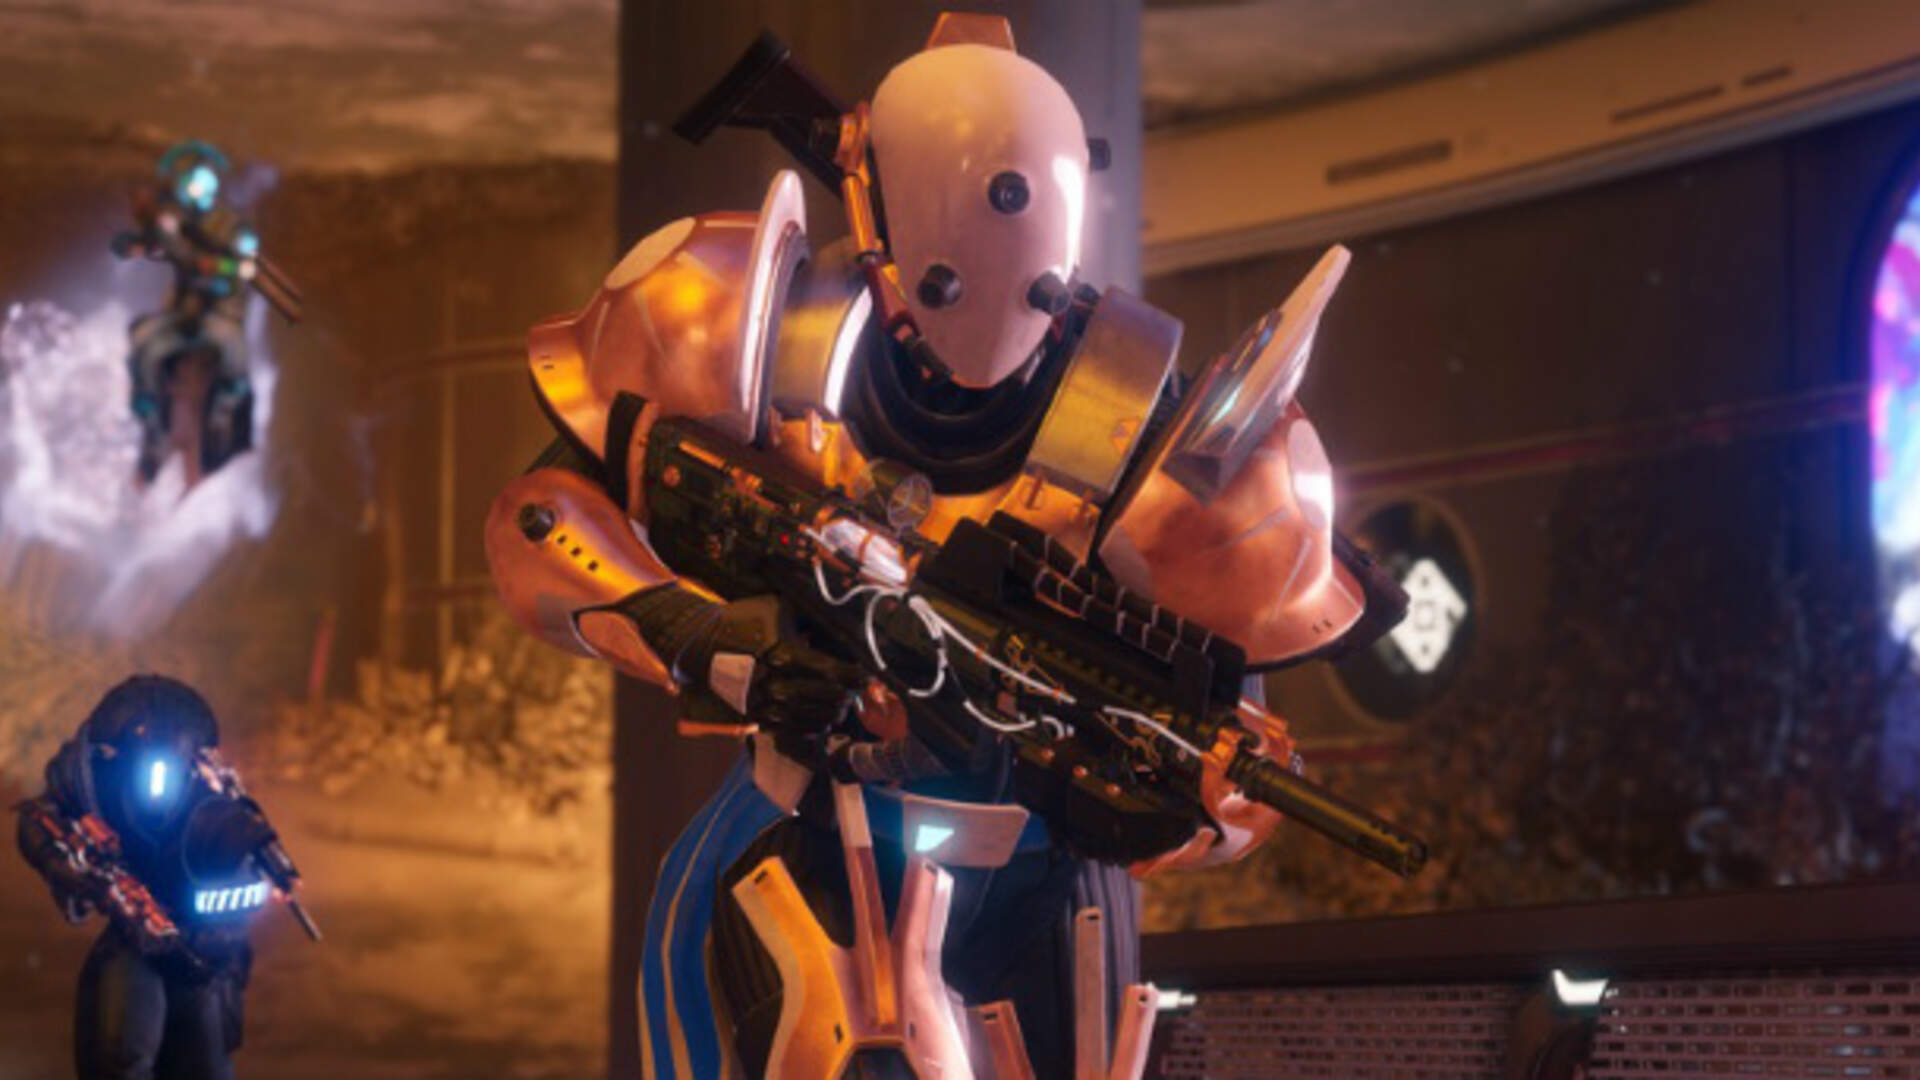 Destiny 2 Players Are Locked Out of Some Endgame Content if They Don't Buy the Curse of Osiris DLC